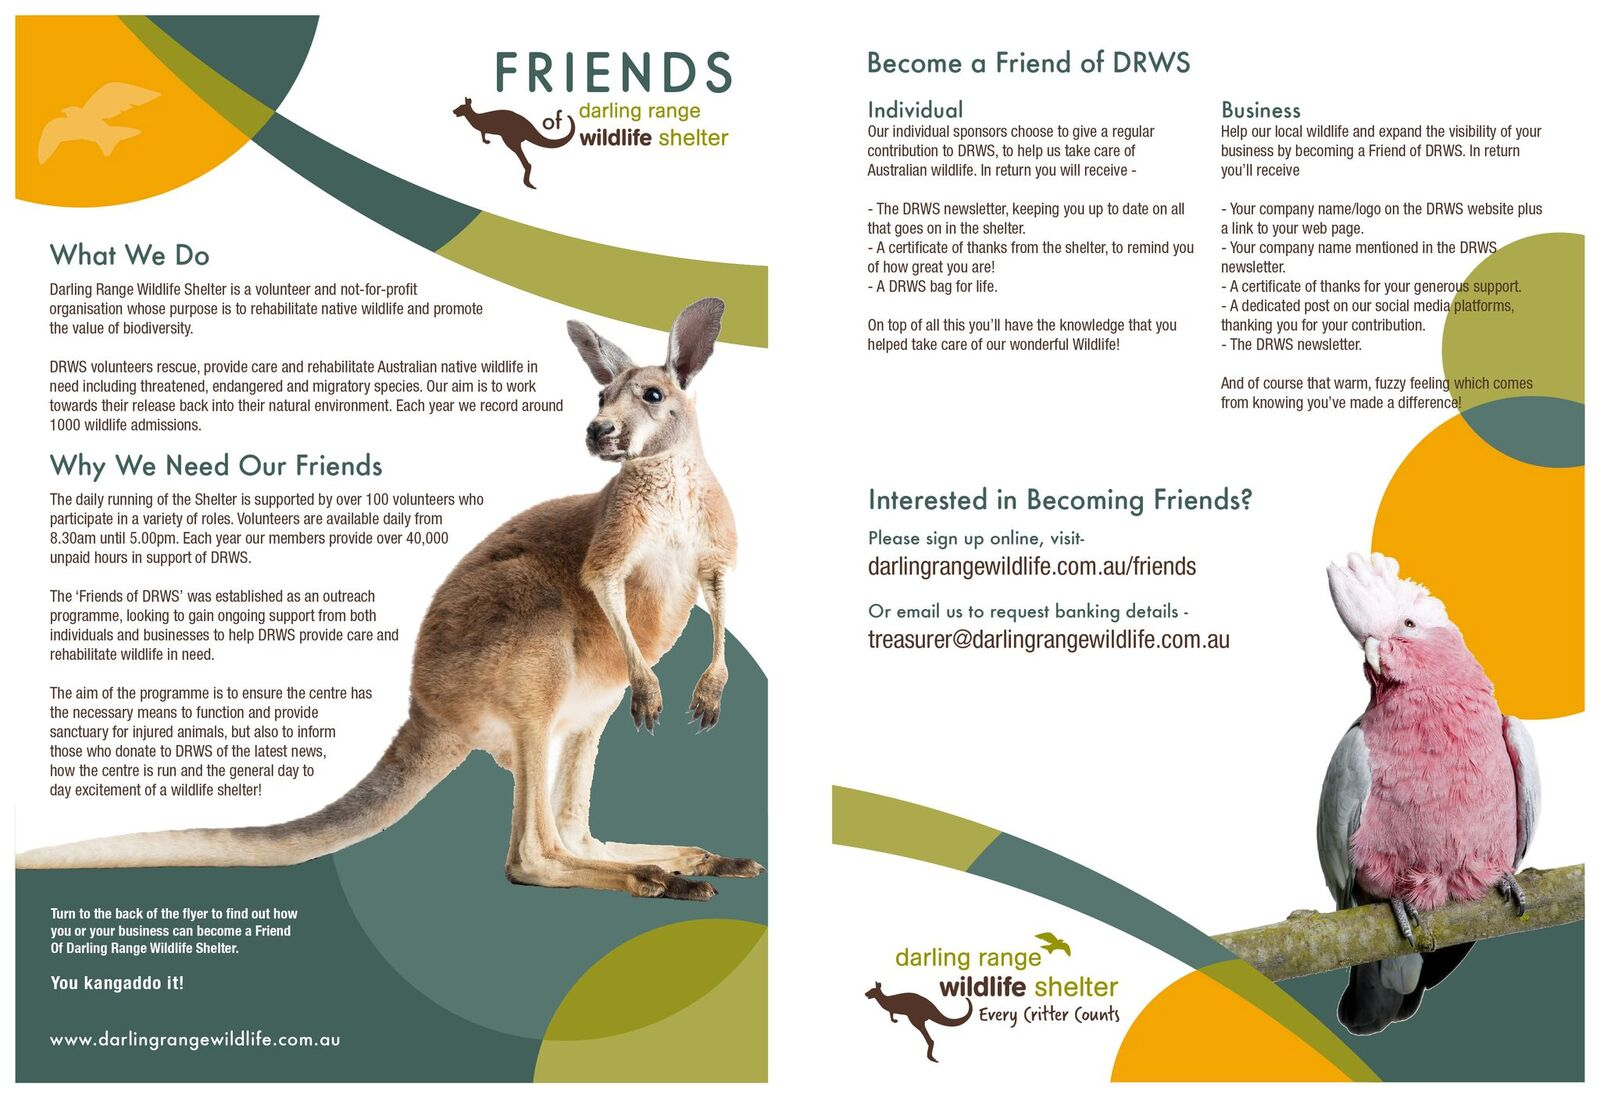 Introducing our 'Friends' Package